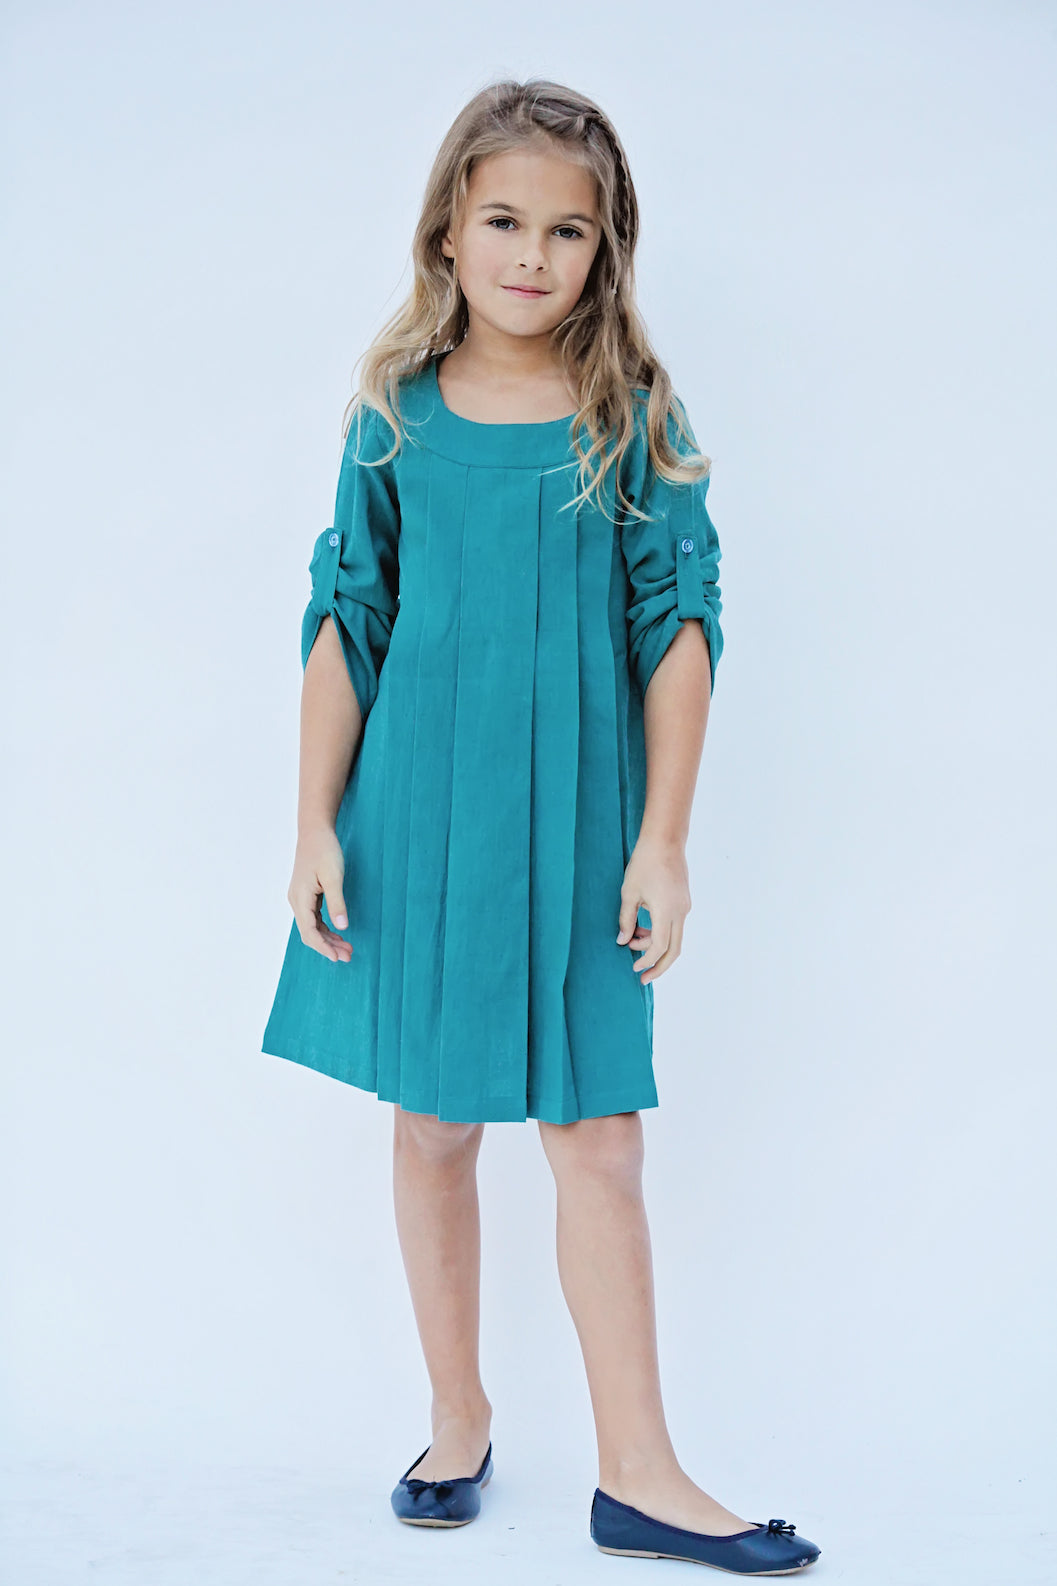 Teal Pleated Full Sleeves Shift Dress - Kids Wholesale Boutique Clothing, Dress - Girls Dresses, Yo Baby Wholesale - Yo Baby